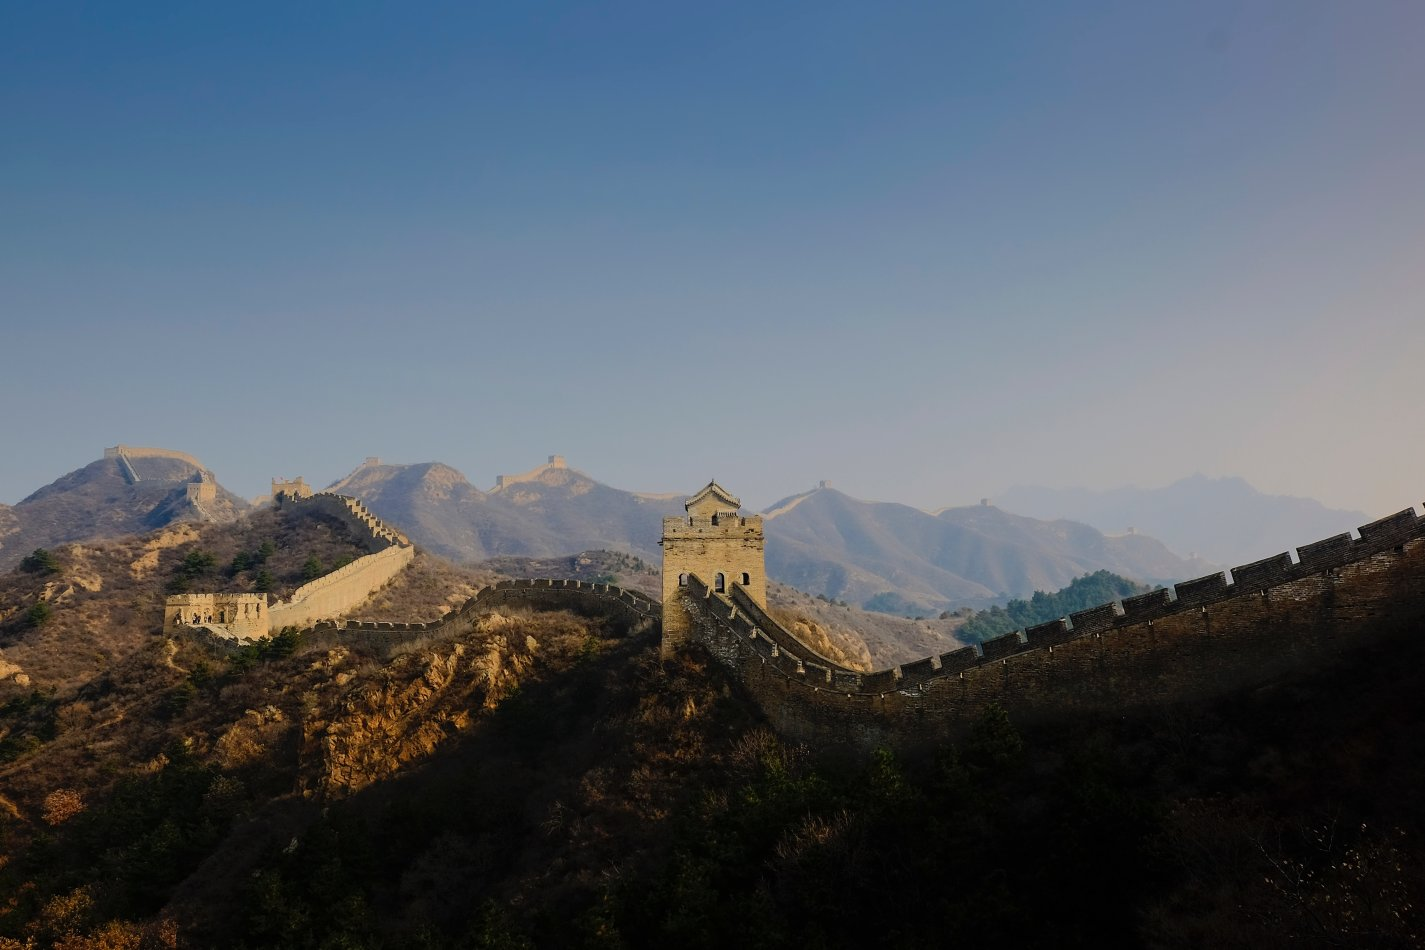 Selling in China on Shopify - Great Wall of China